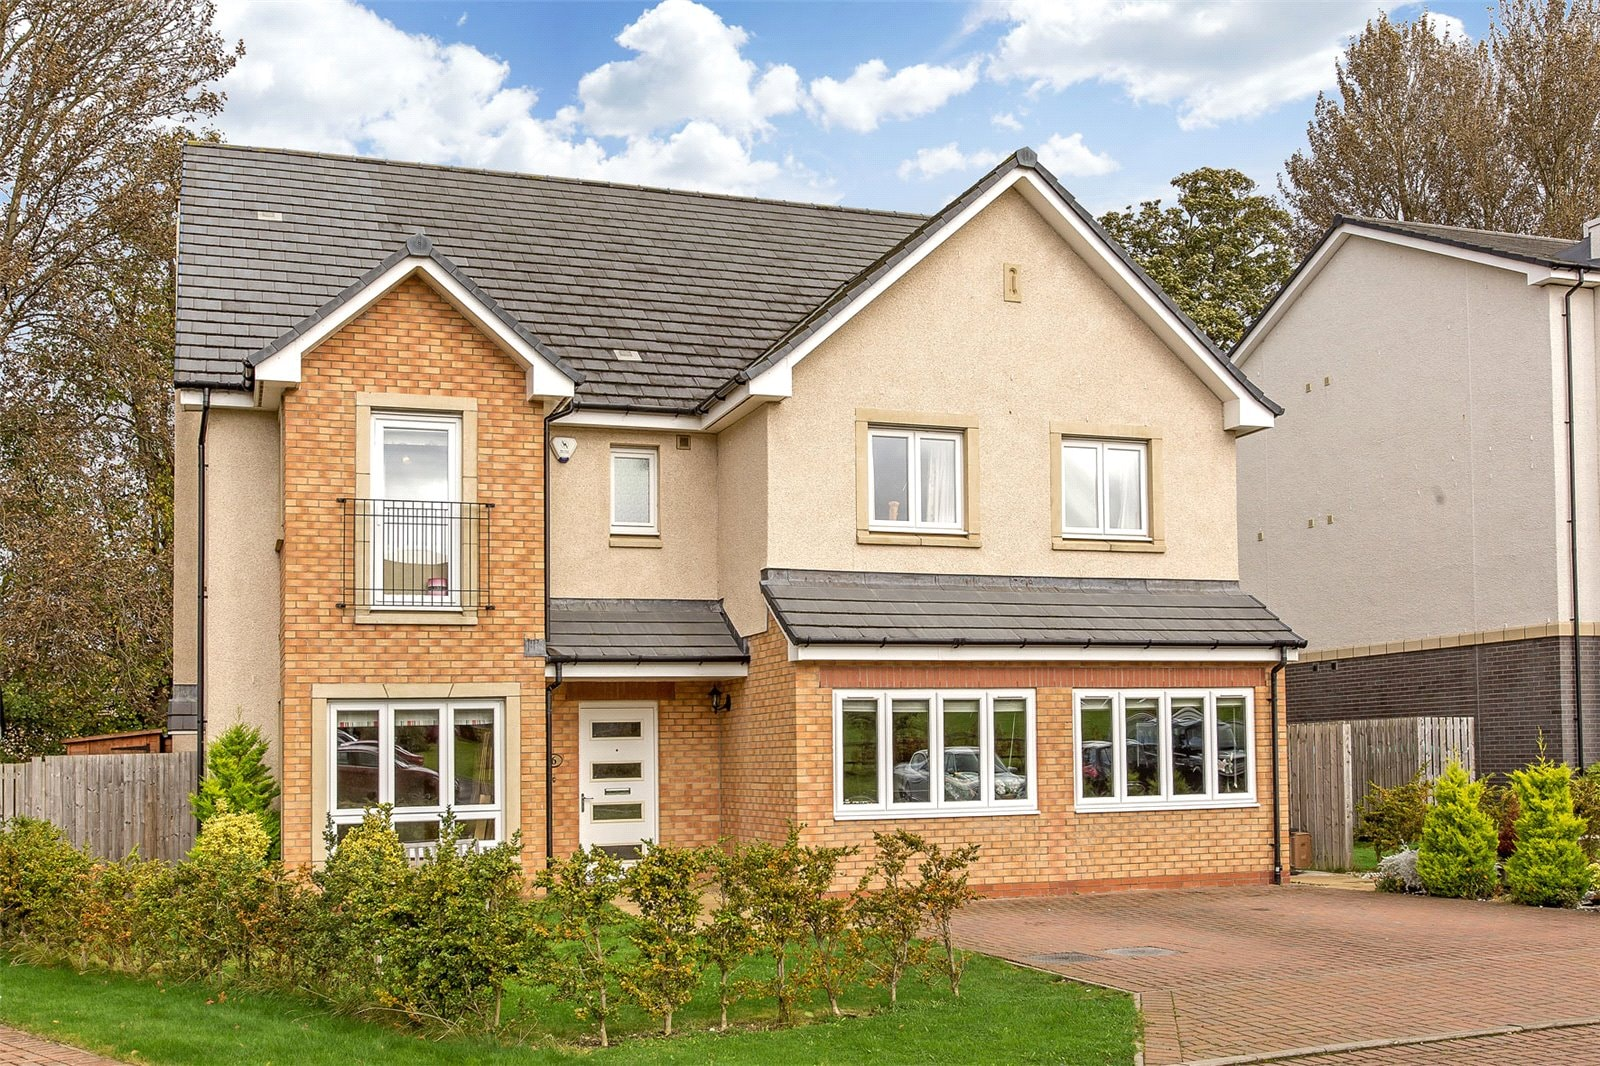 Edinburgh Property of the Month: 6 Greenwood Close